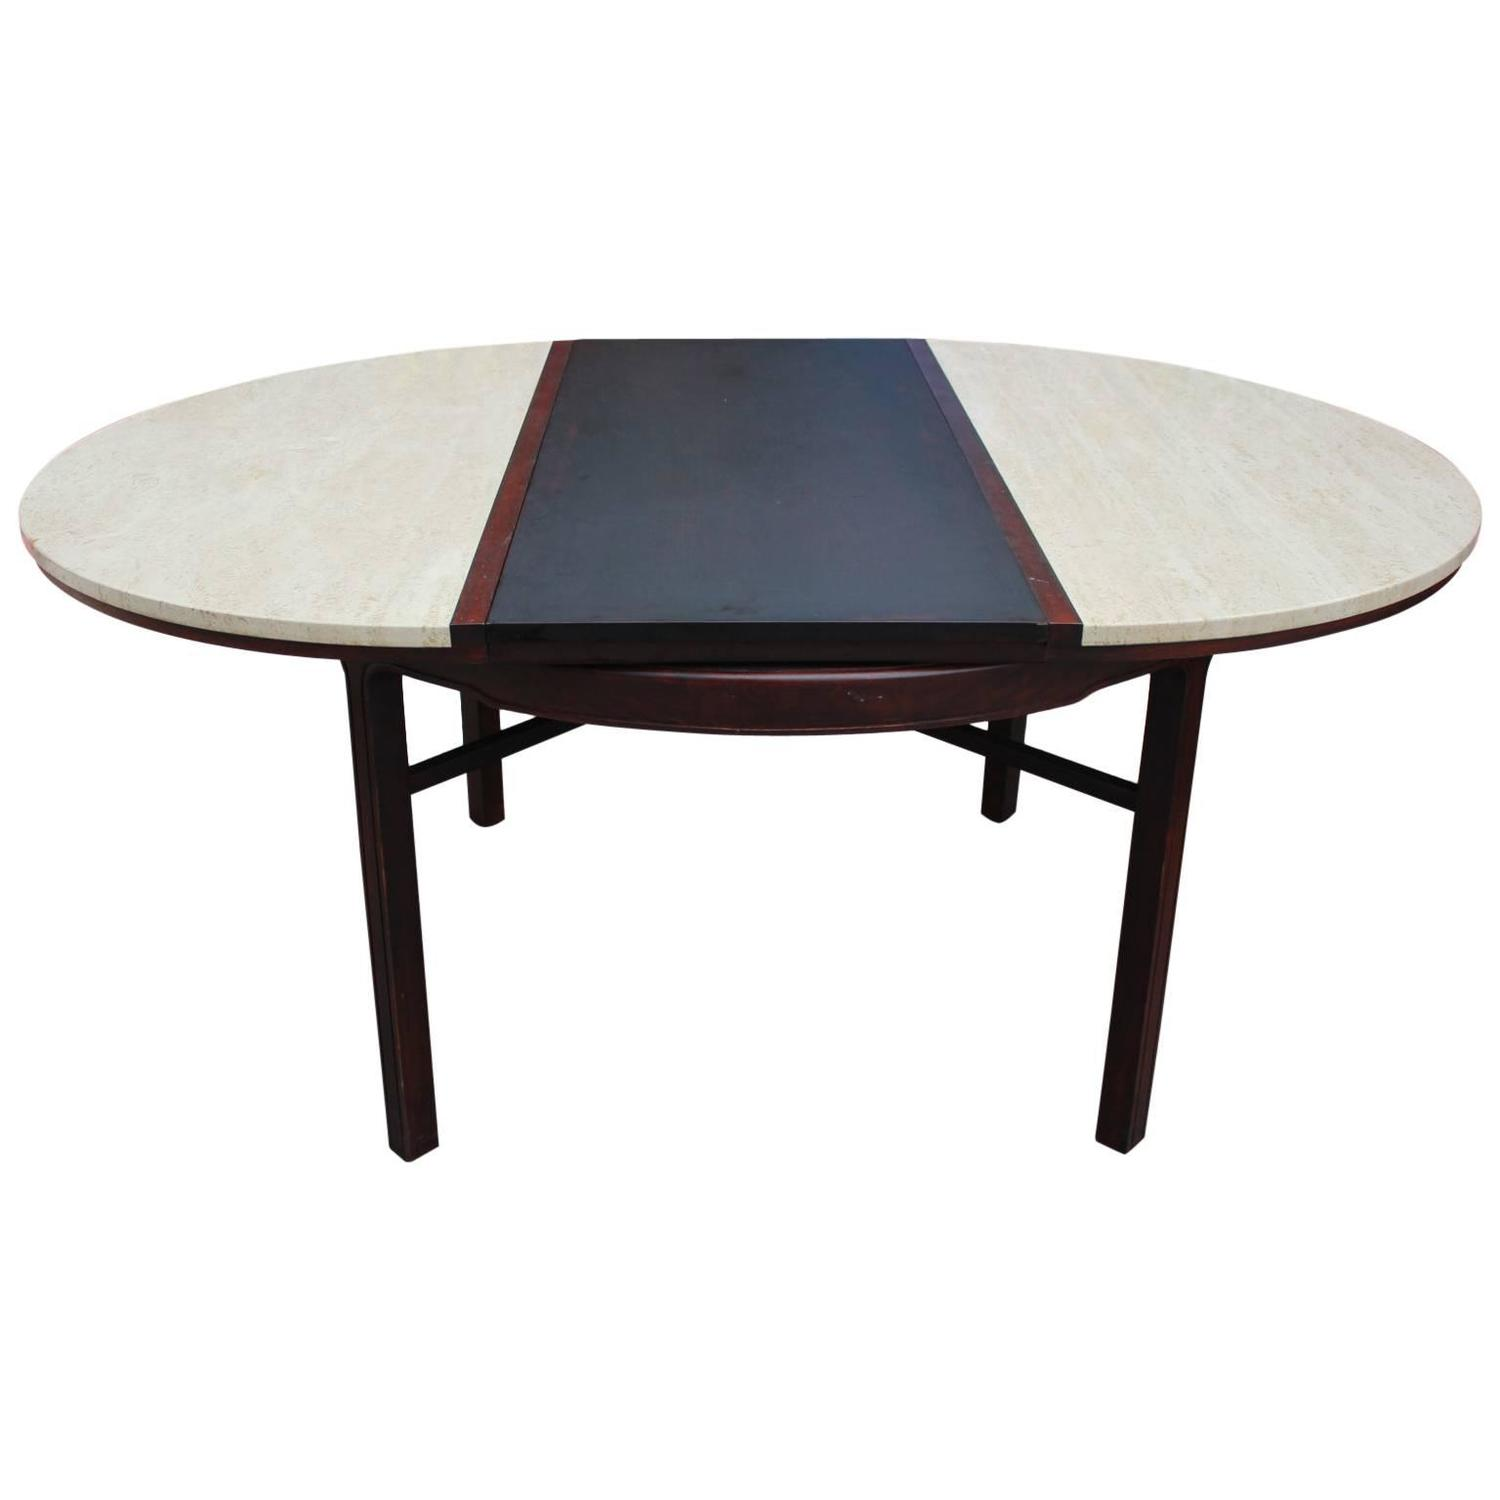 Striking Color Blocked Travertine Dining Table At 1stdibs